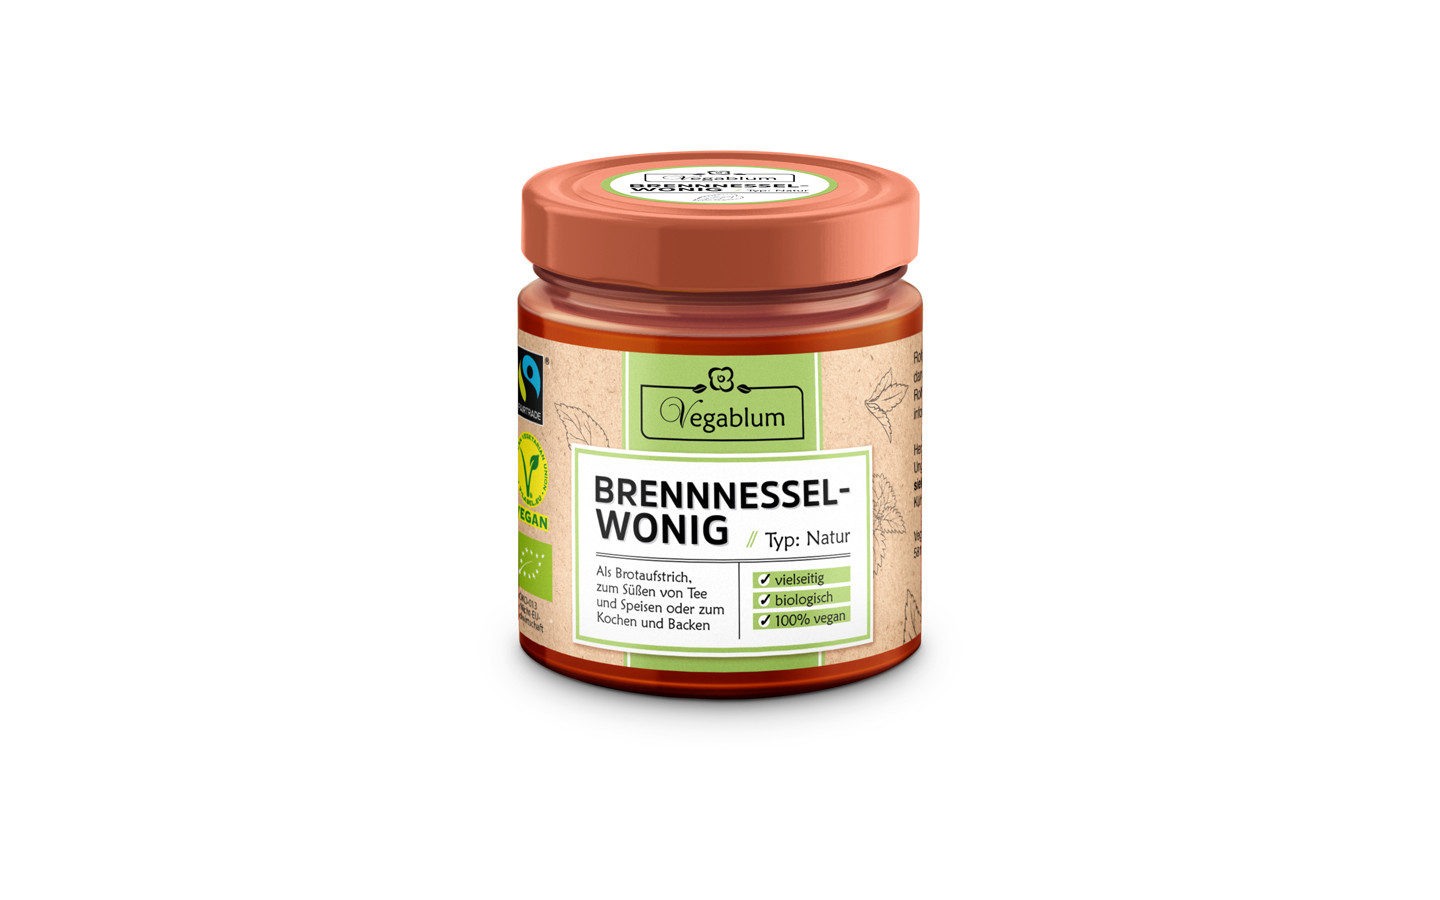 Wonig - The vegan Honey-Alternative